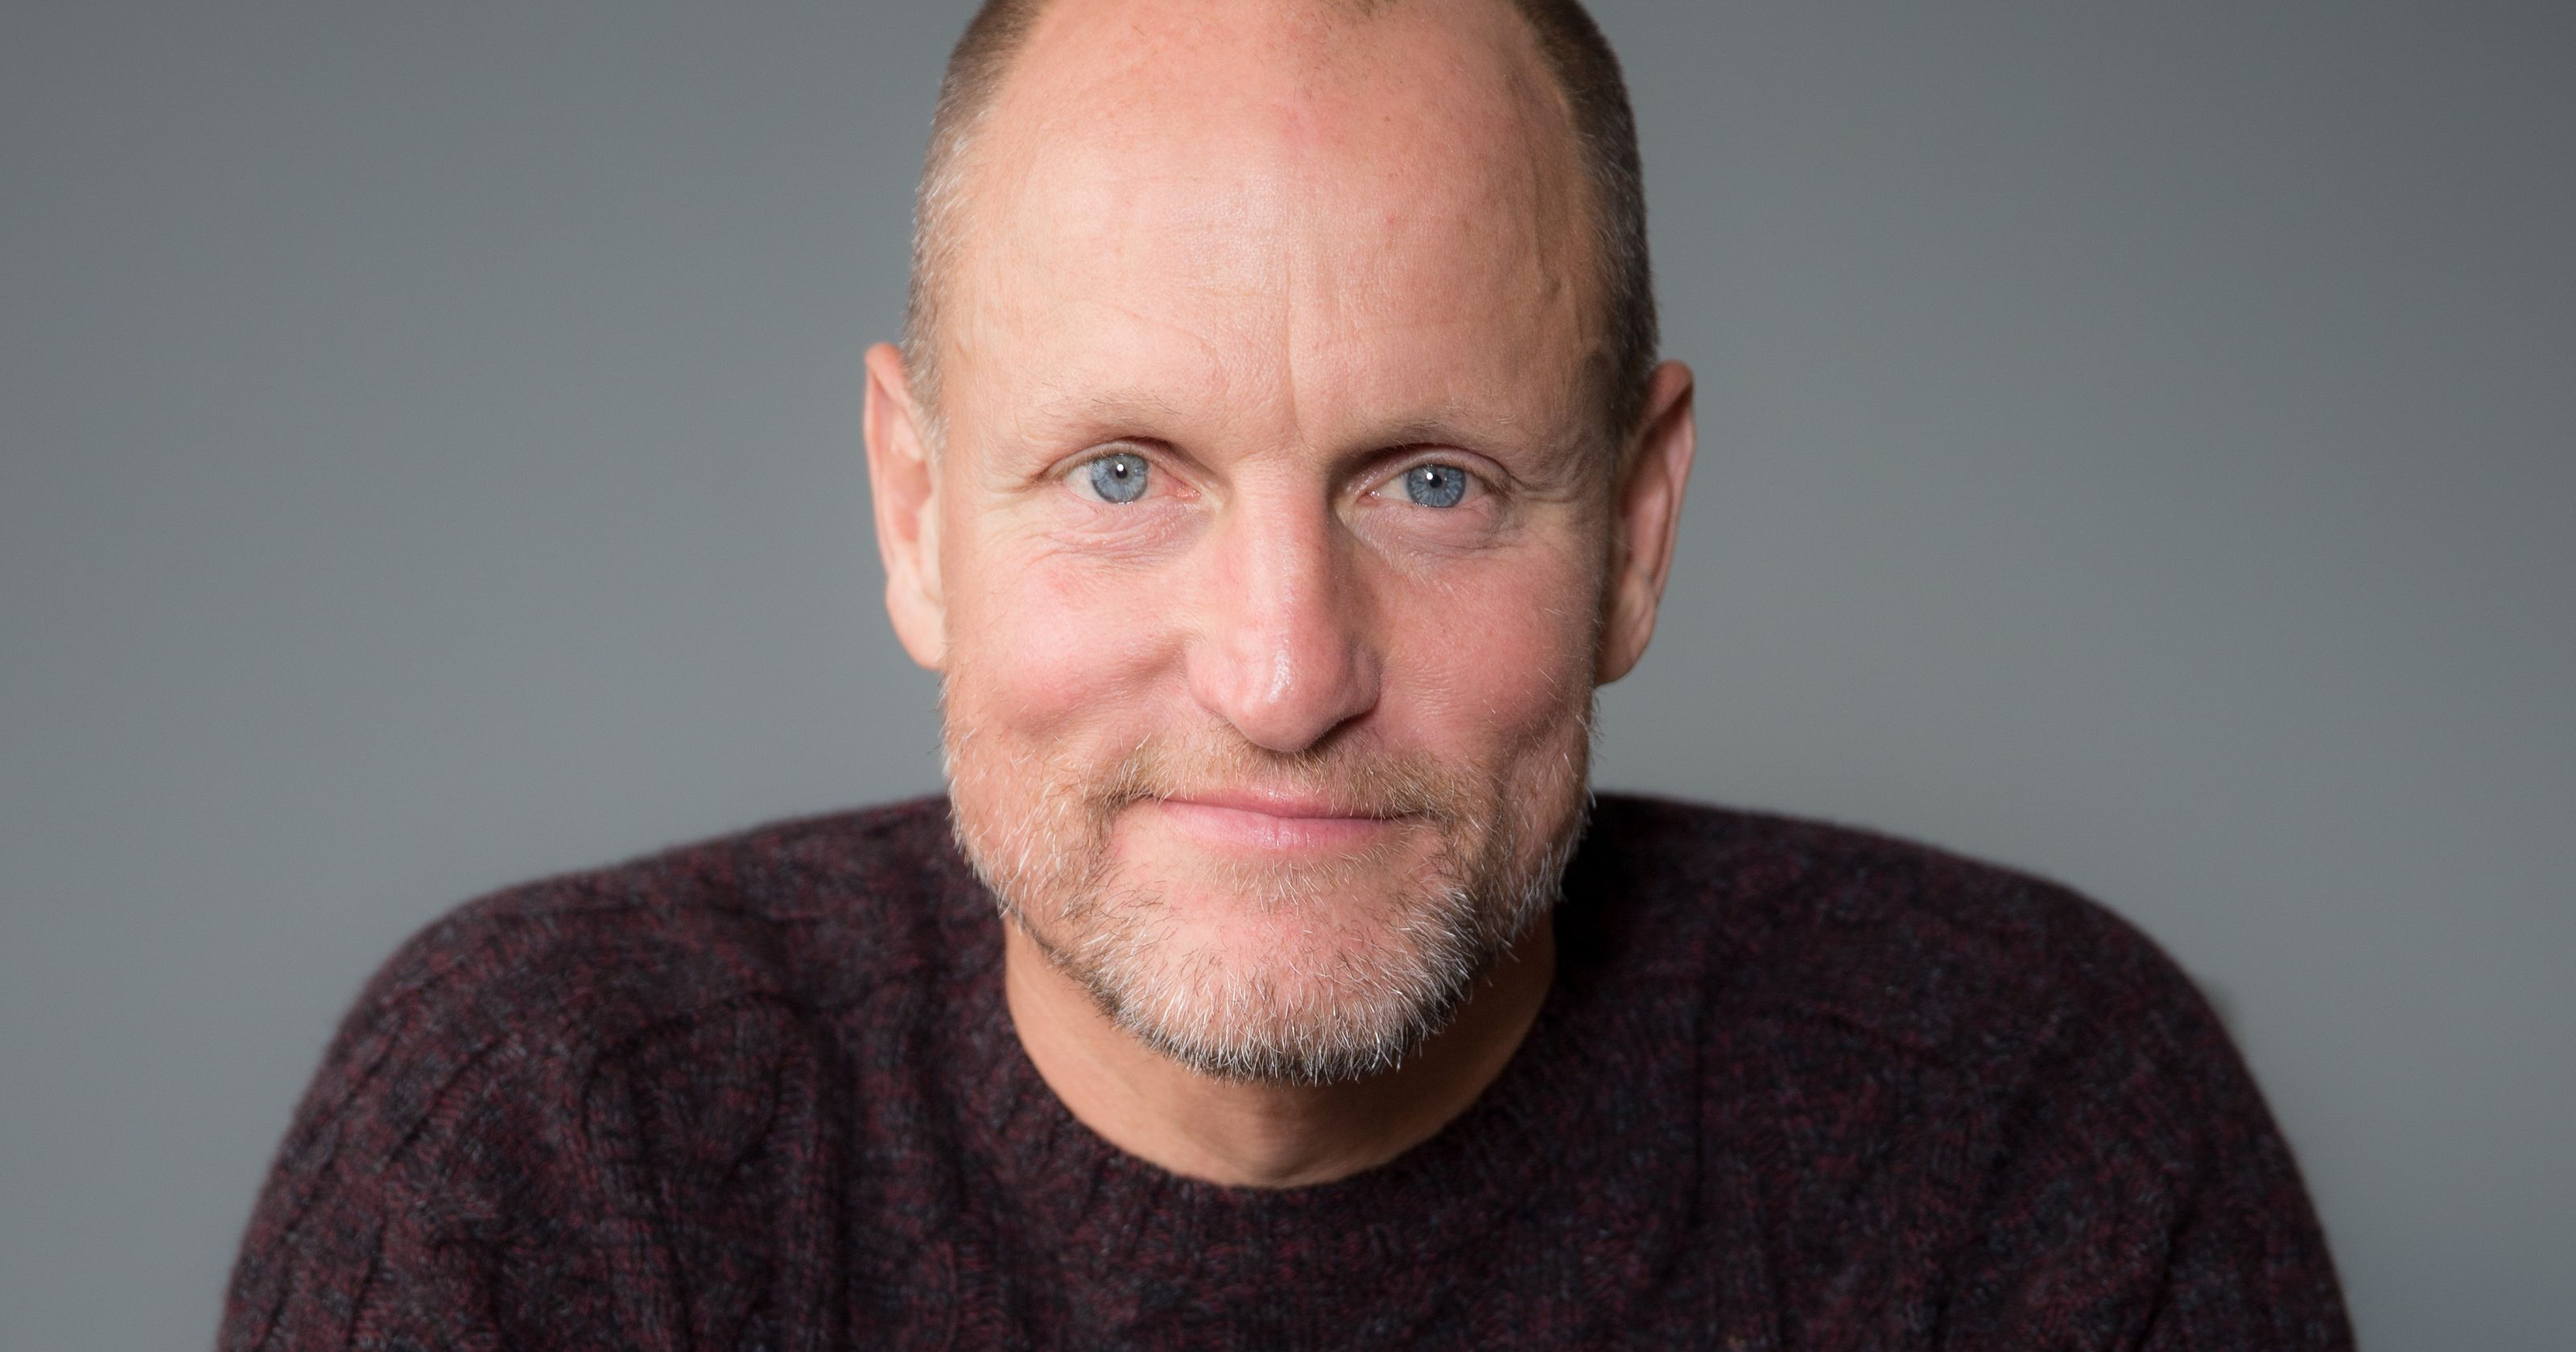 https://cinemaplanet.pt/wp-content/uploads/2017/01/woody-harrelson.jpg